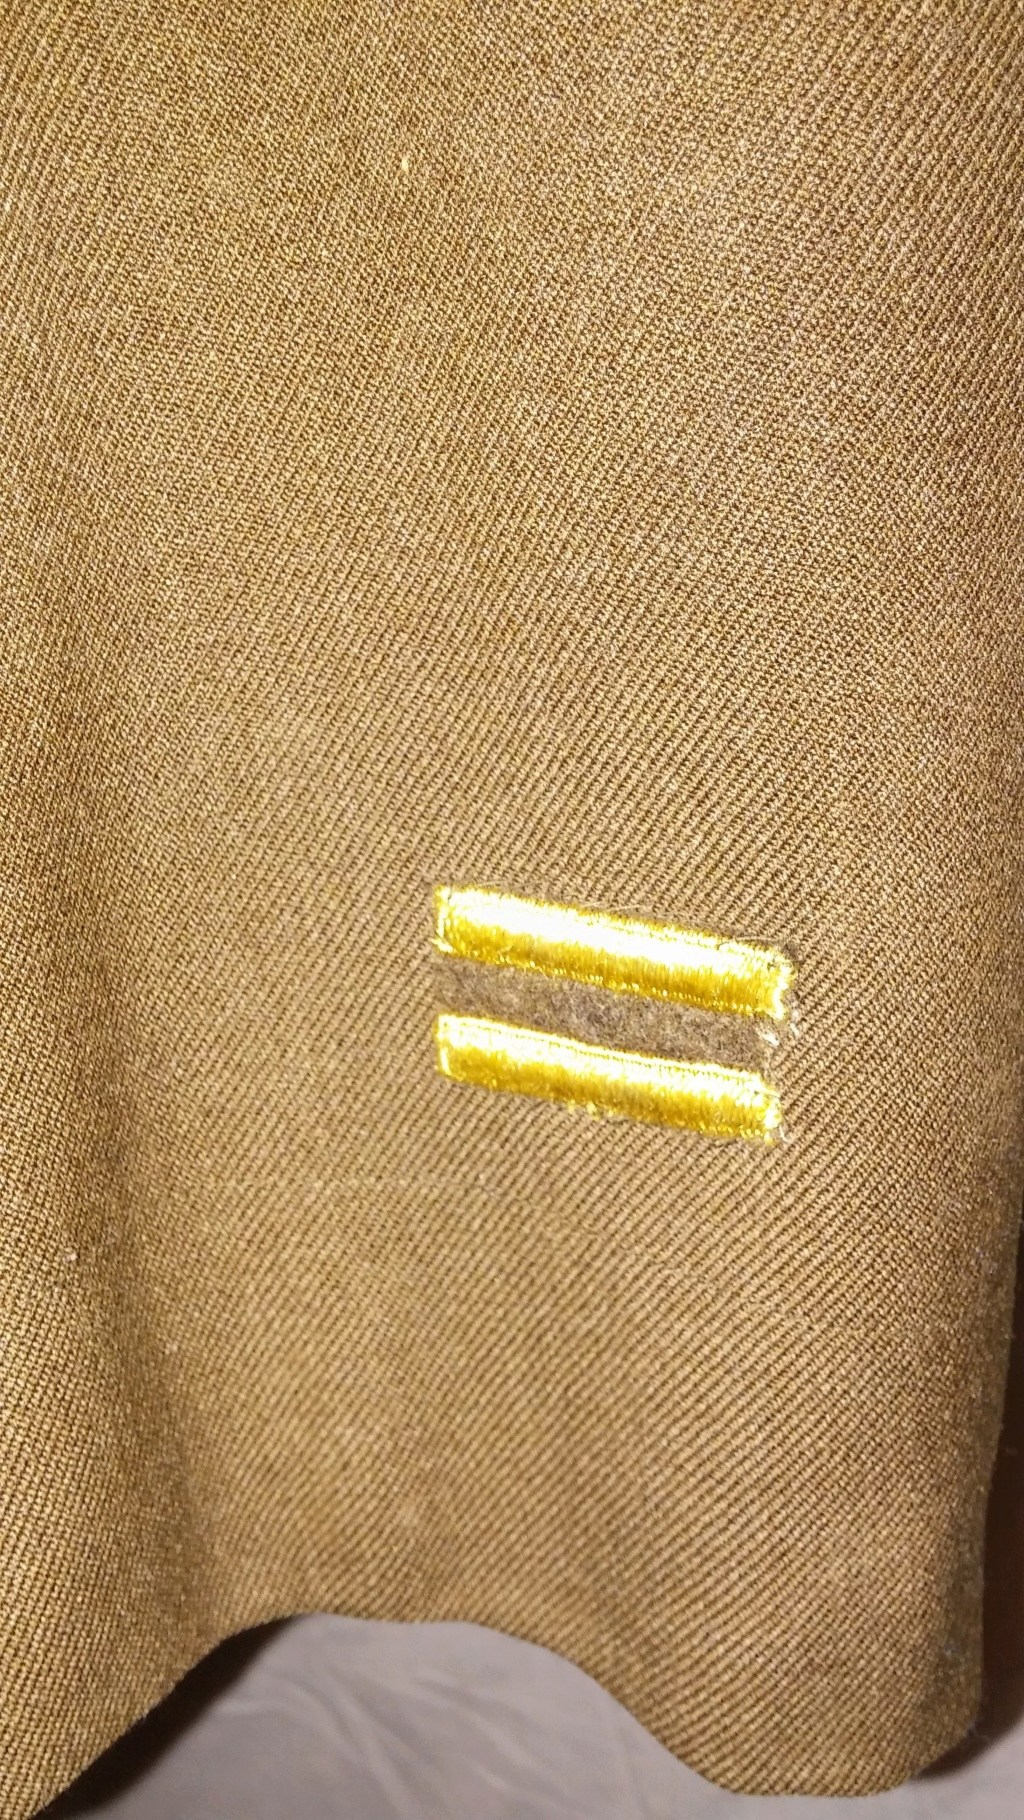 US Army 78th Division Technical Sergeant Uniform and Relics 19700278